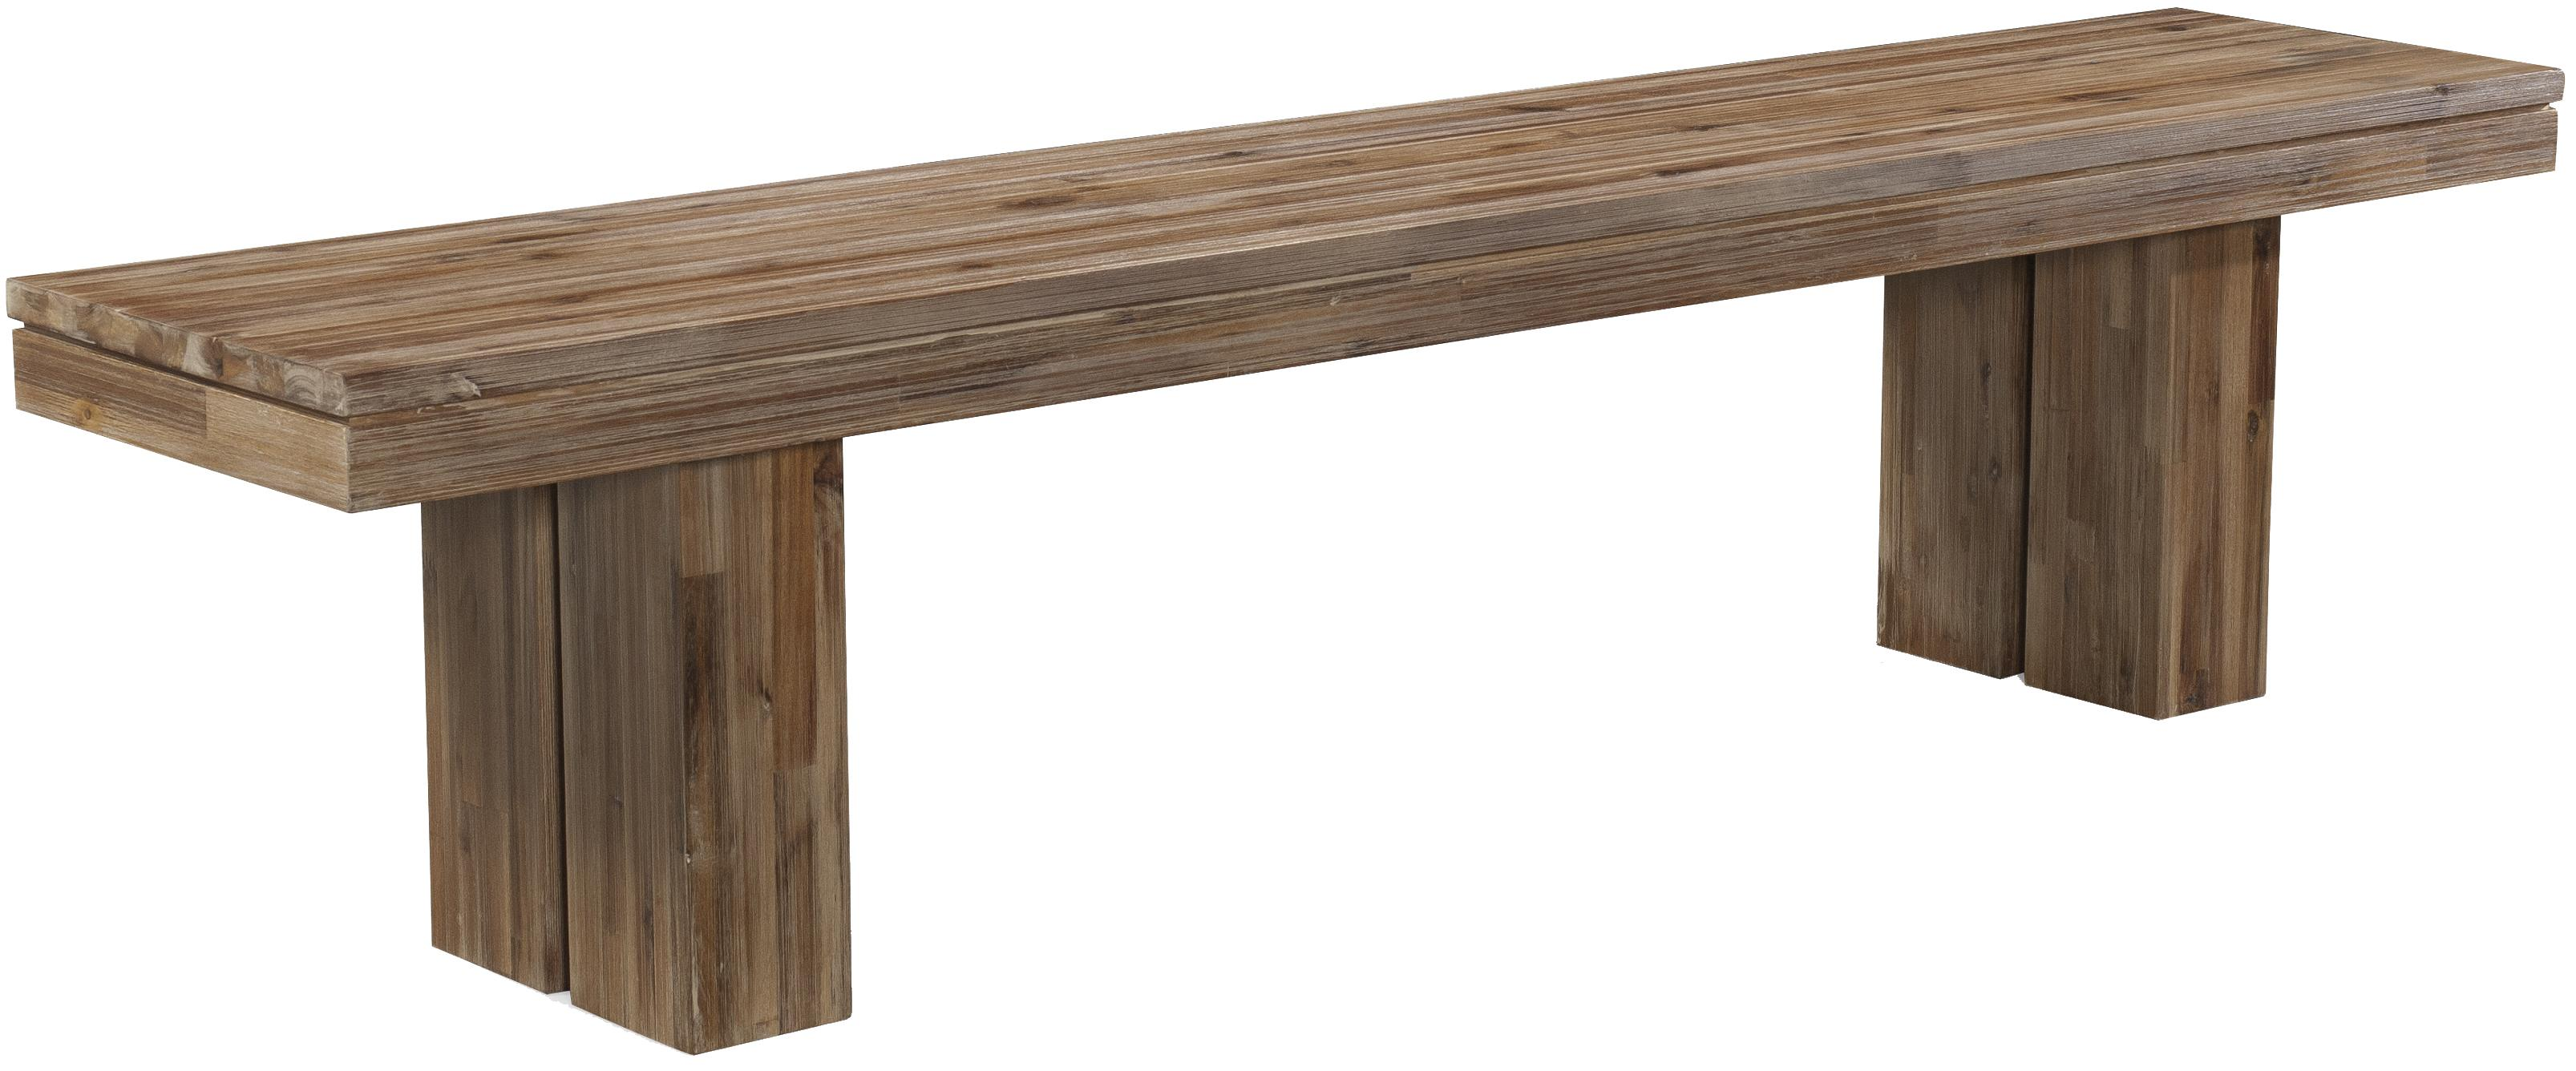 cresent fine furniture waverly dining bench item number 5559 contemporary rustic